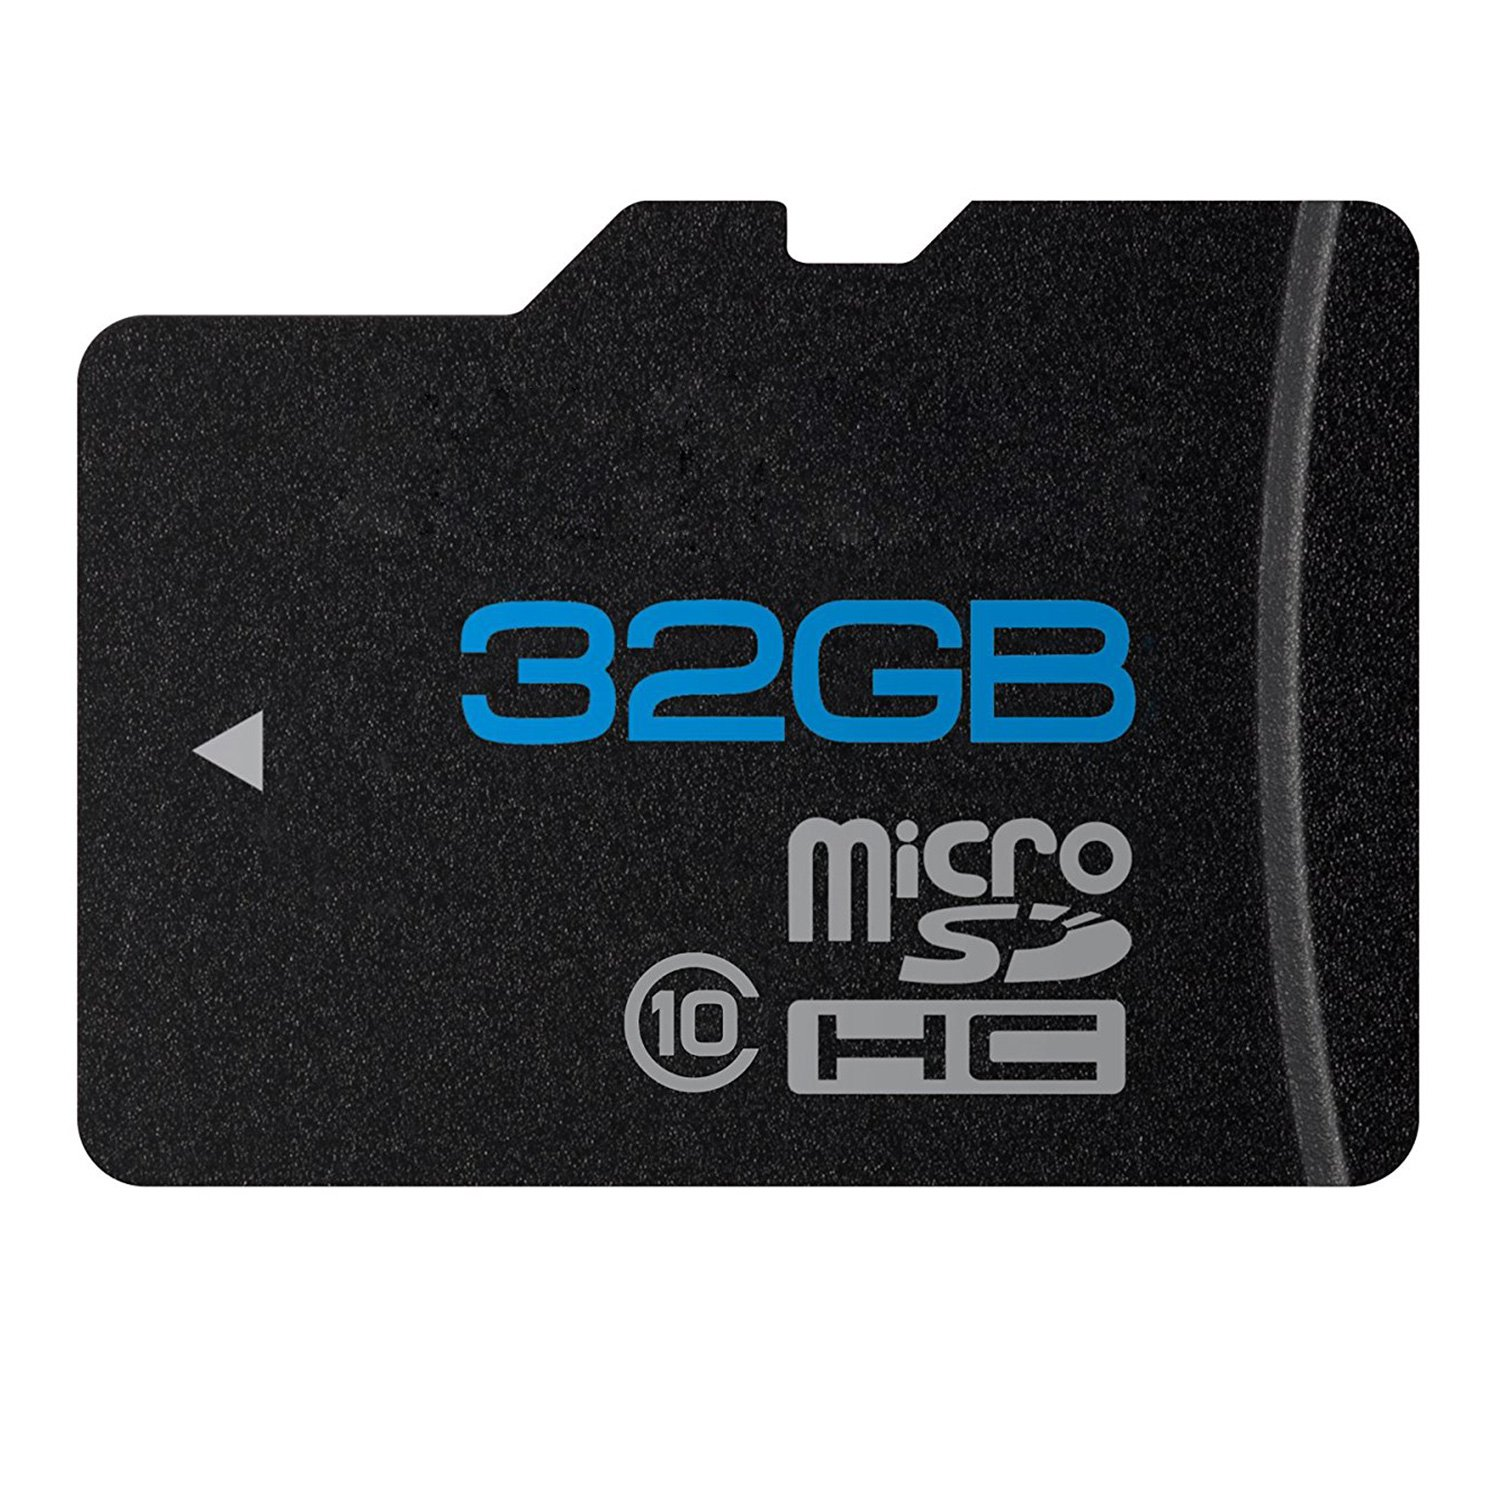 OldShark 32GB Micro SD Card Class 10 for Dash Cam and Other Devices